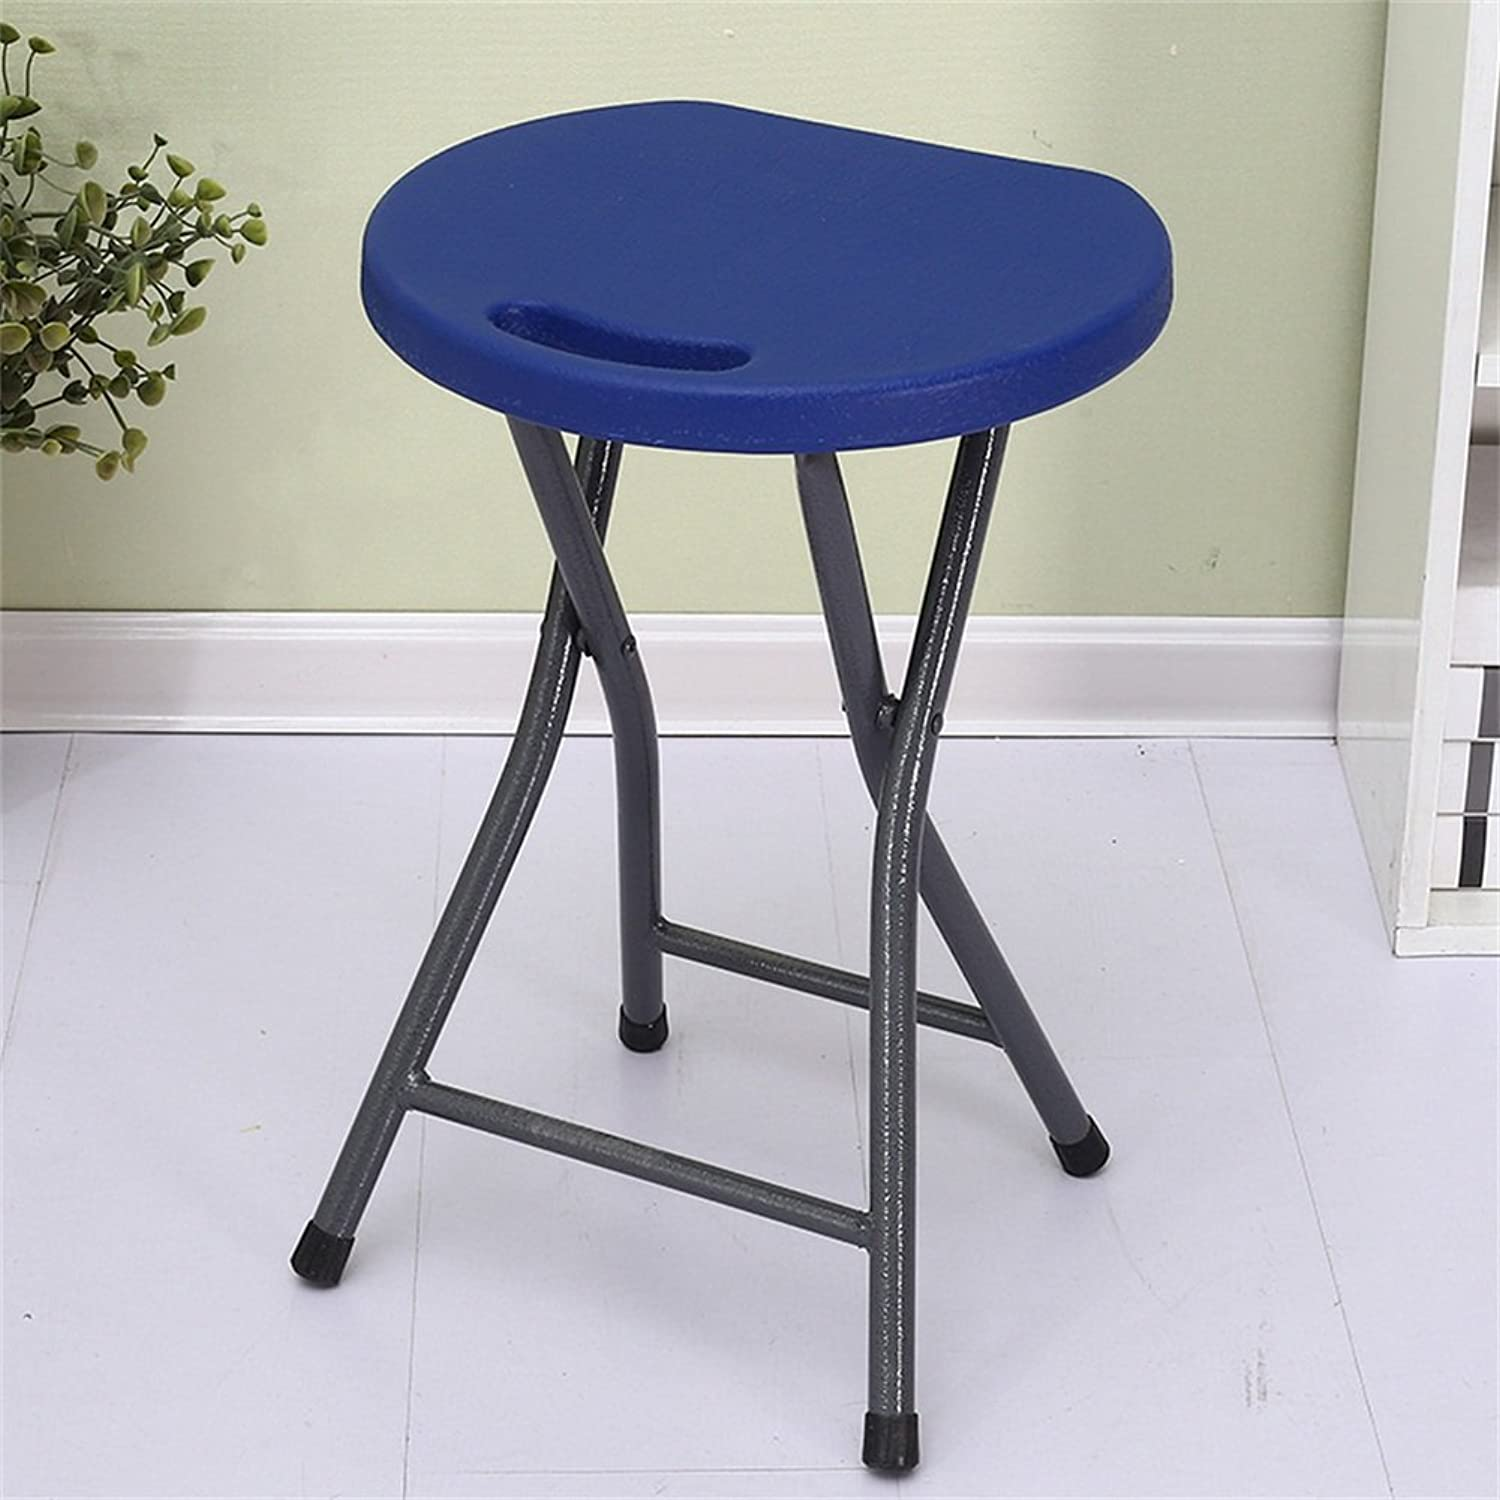 PVC Material Folding Stool 150 Kg Negative Weight Comfortable Portable Dark bluee 45  33  33cm